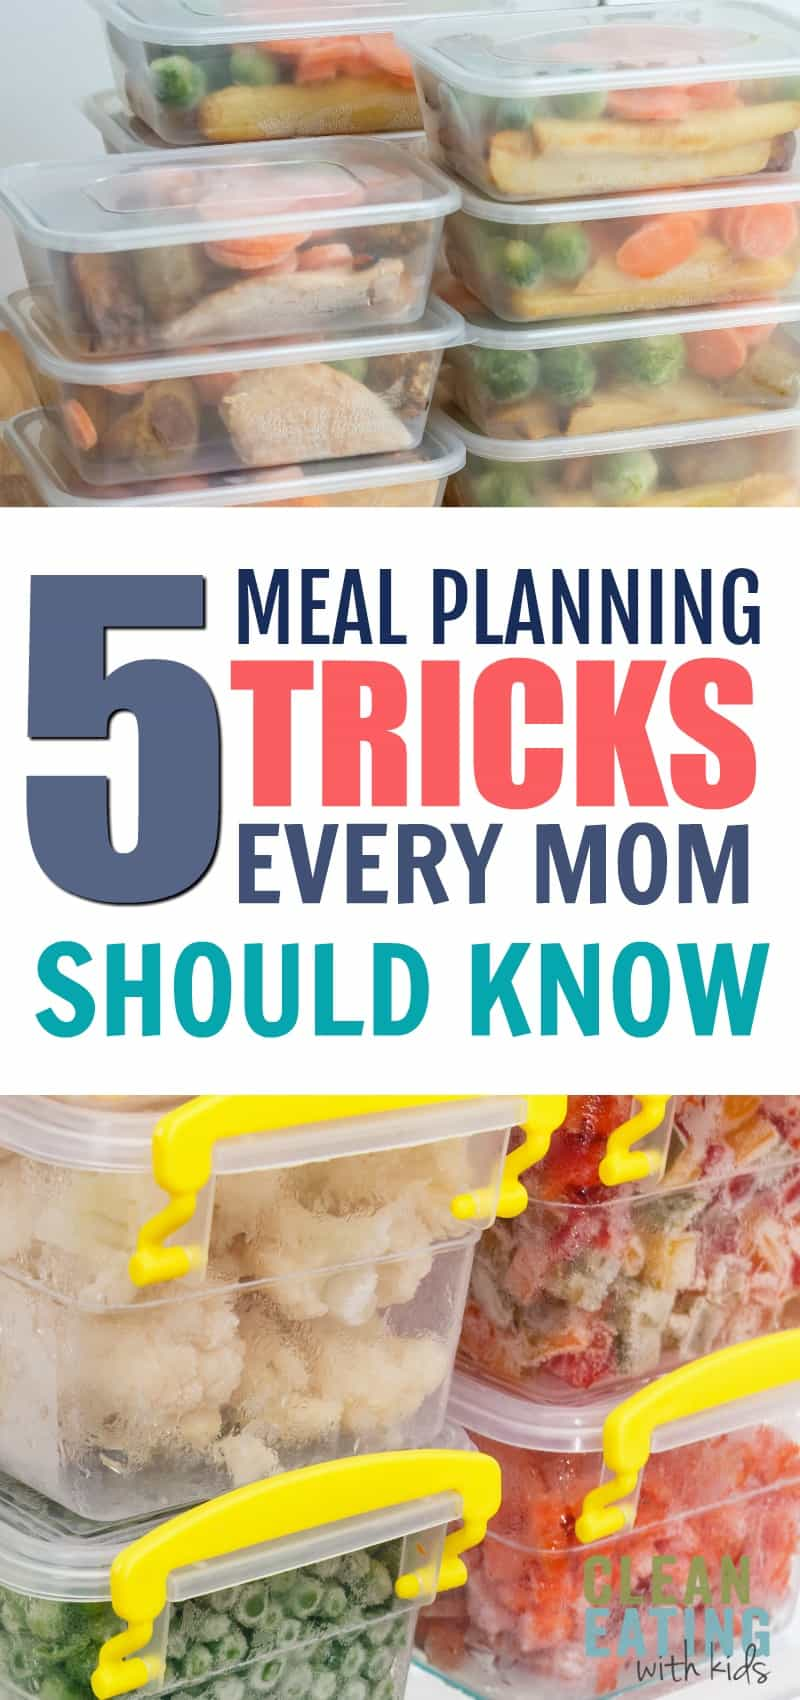 New to Meal Planning? Here are 5 Meal Planning tips that every Mom should know.